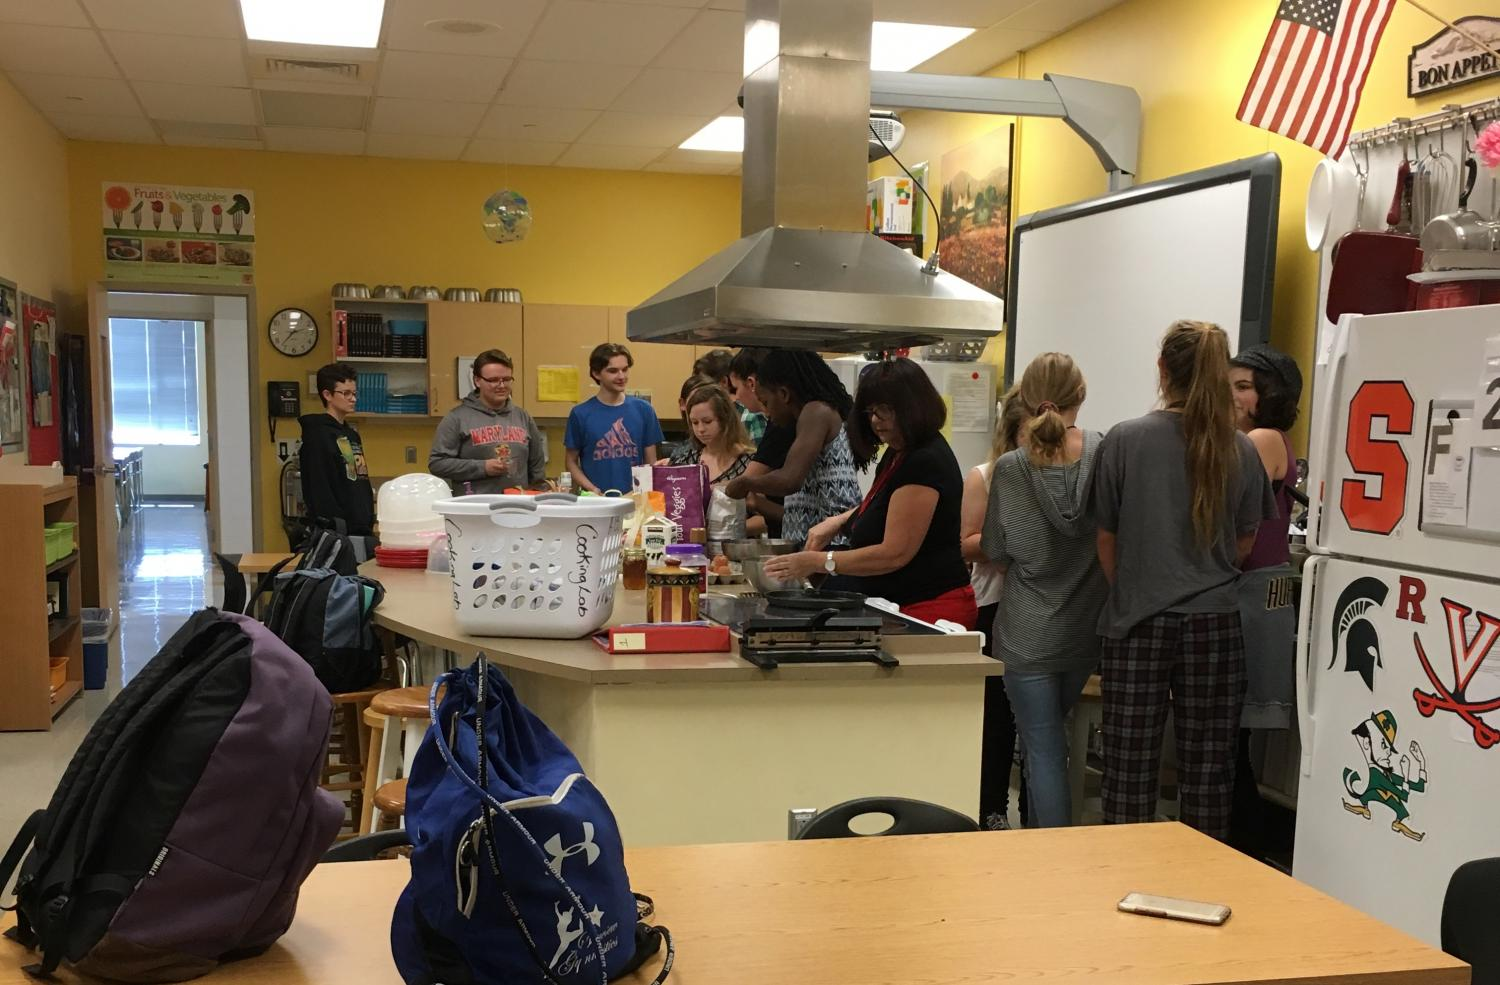 Madame Dragana Blonder shows students how to prepare crepe batter.